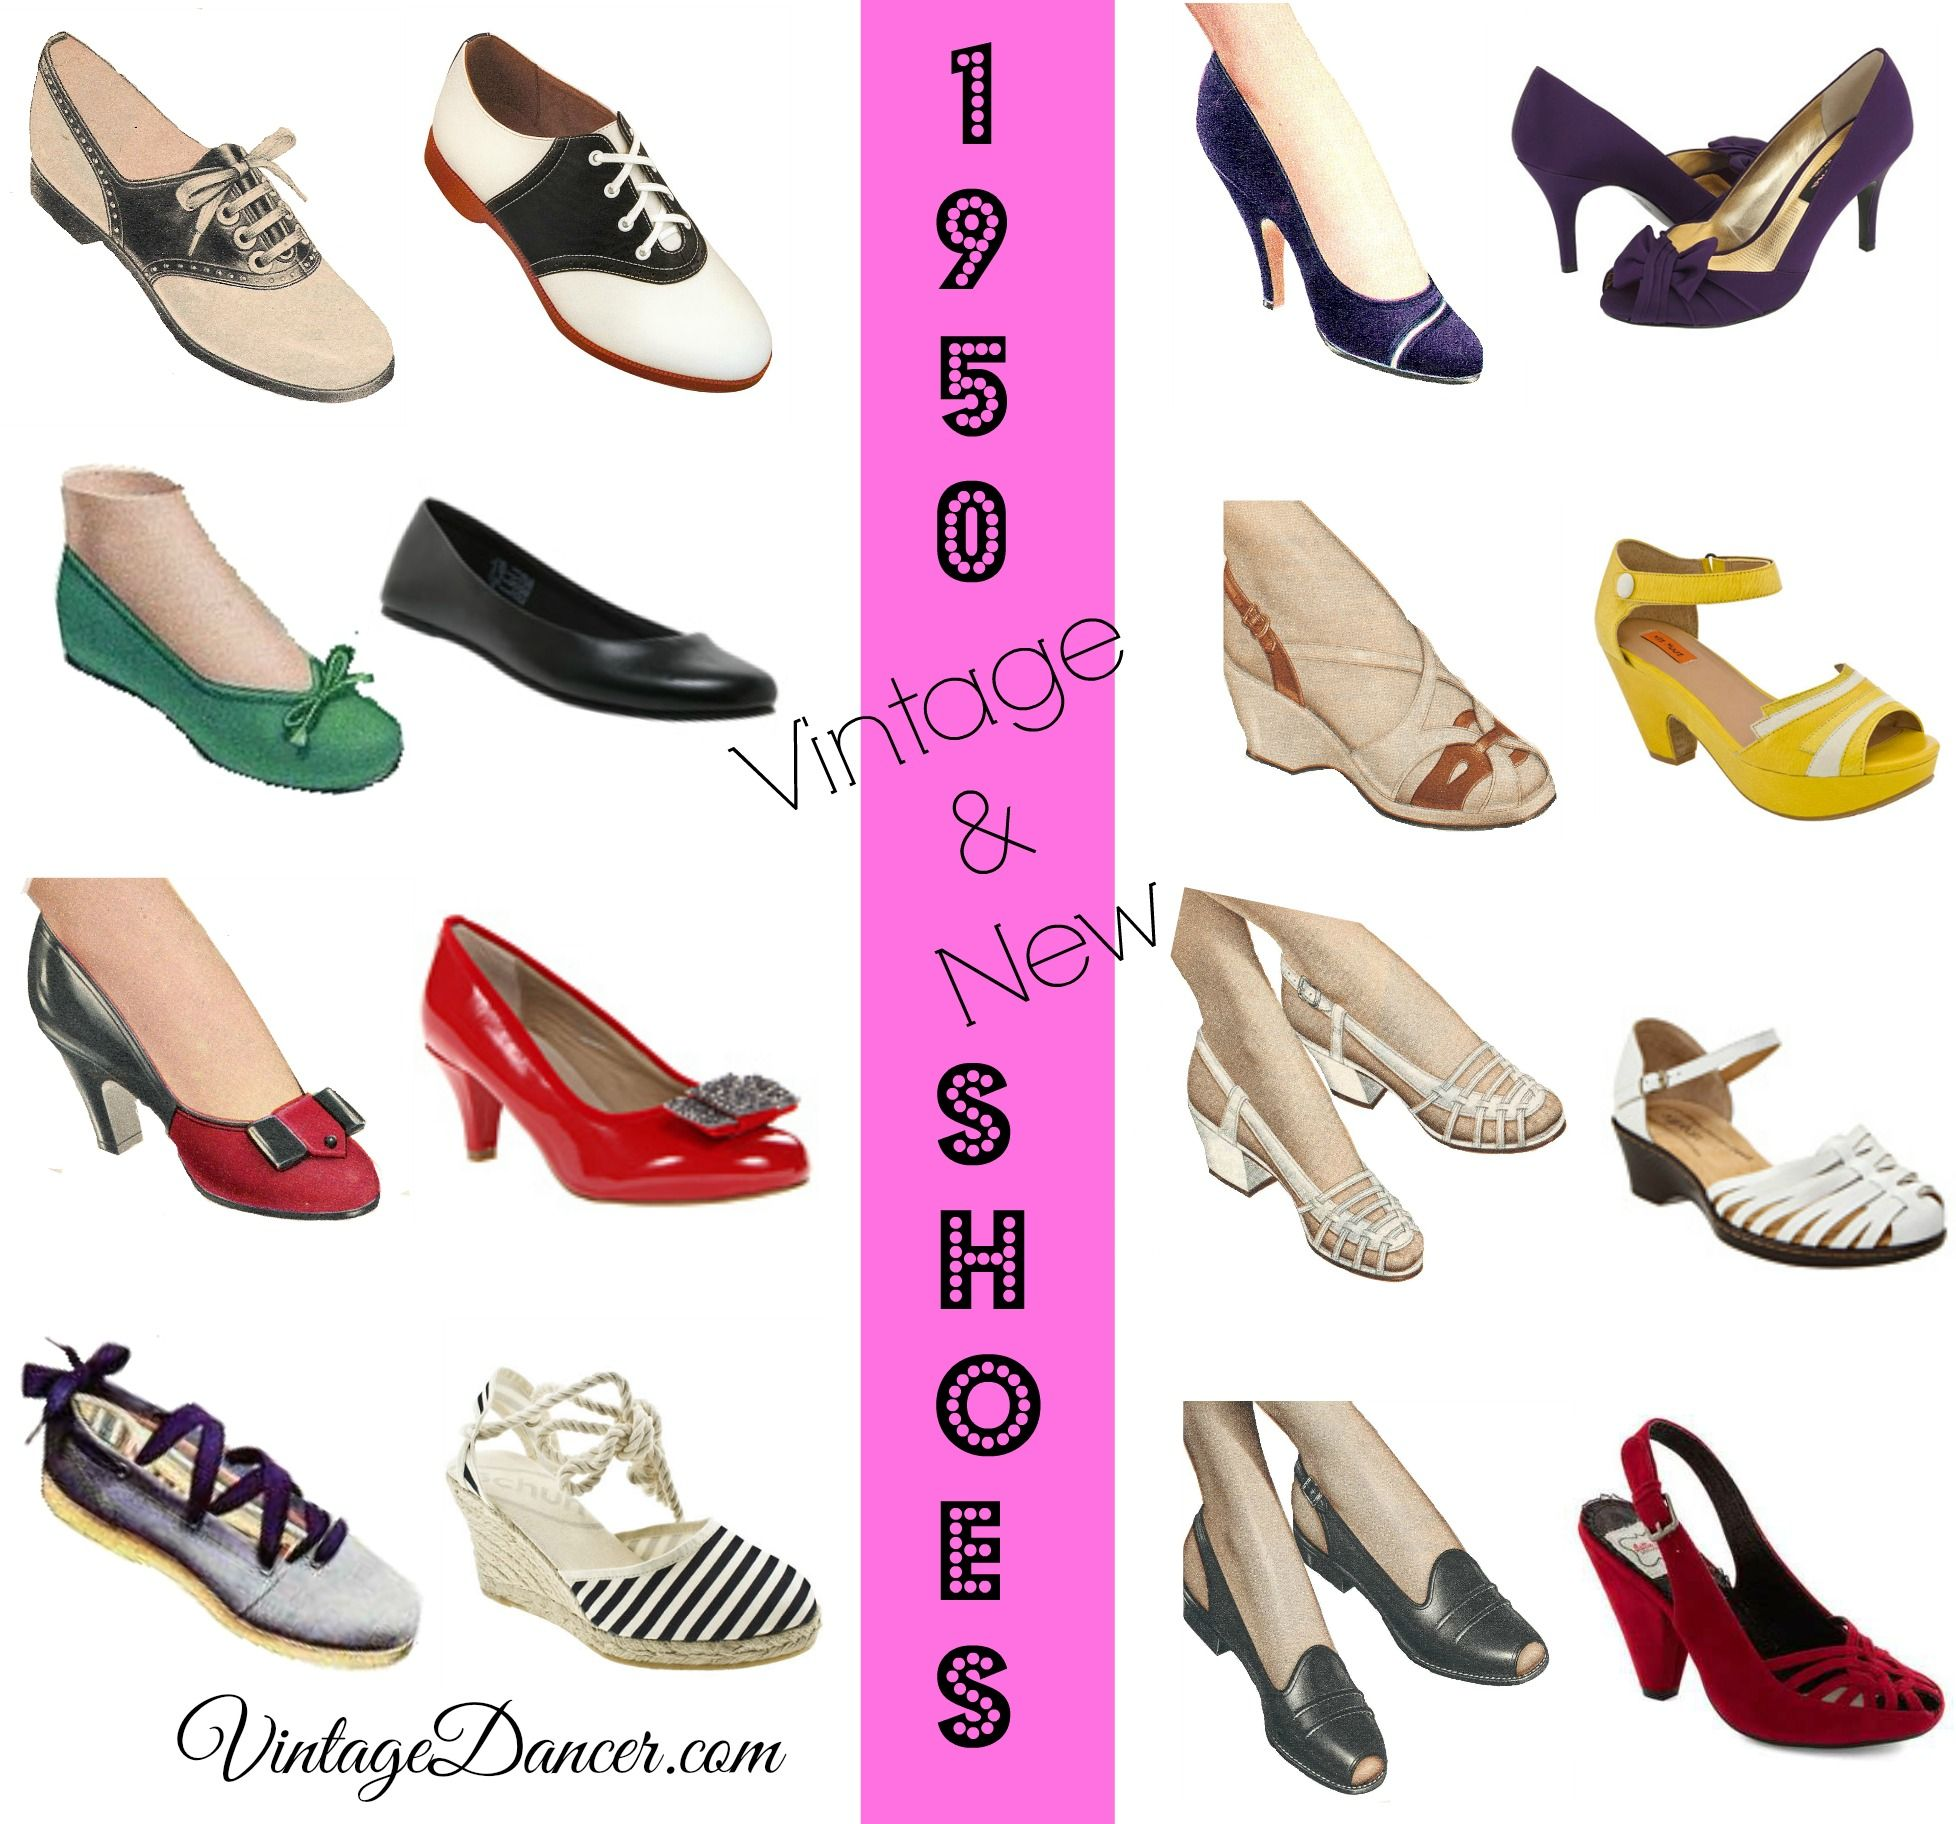 1950s Shoe Styles History And Shopping Guide 1950s Shoes 1950s Fashion Shoes Shoe Style